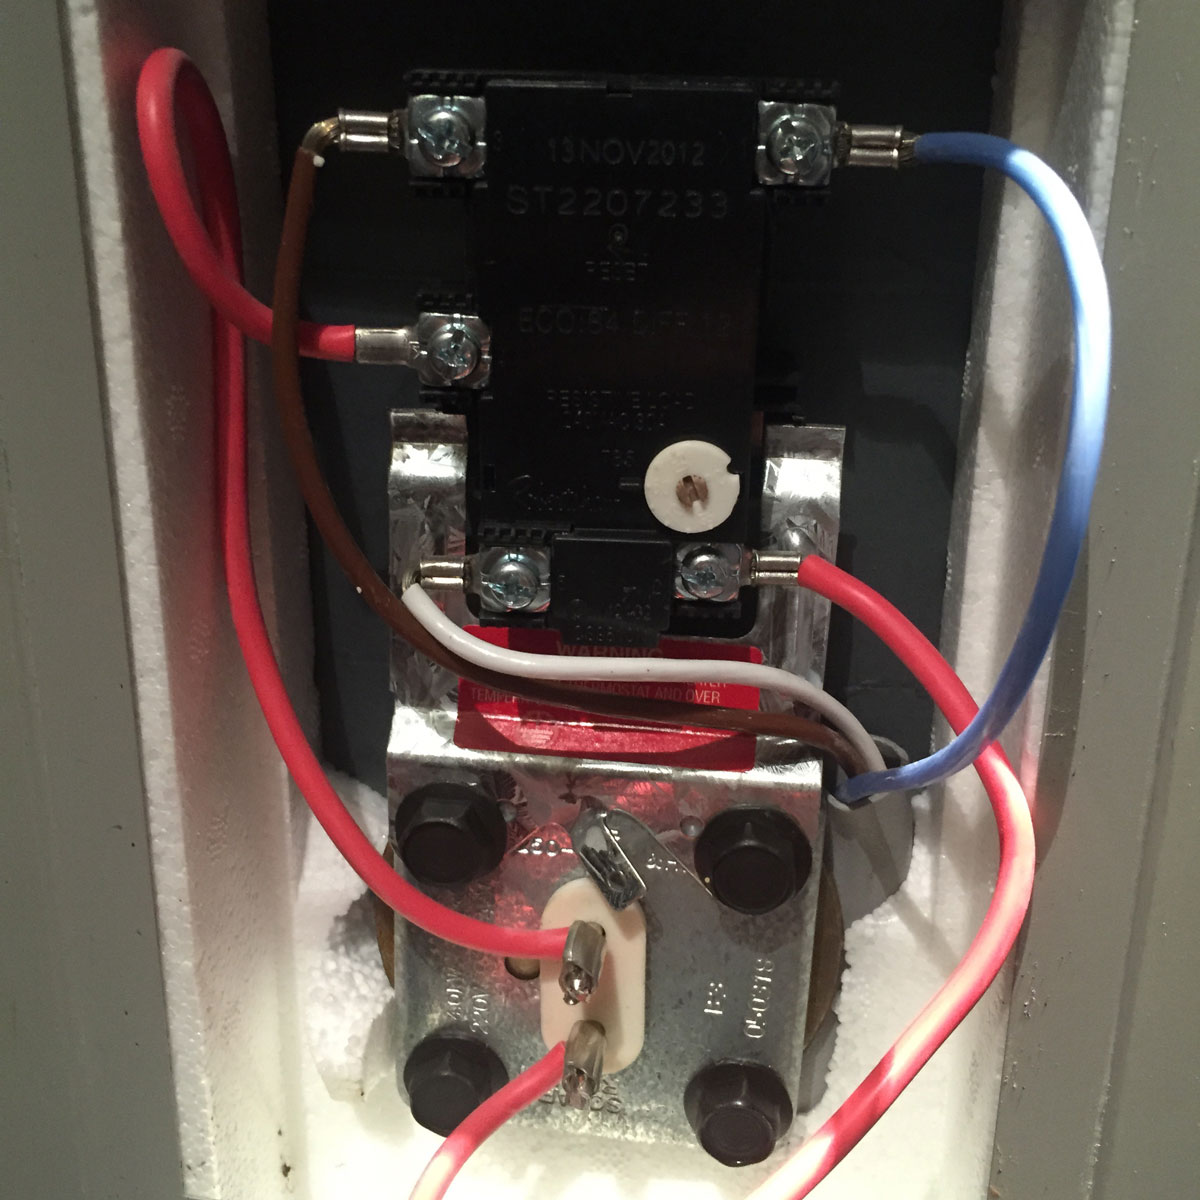 Wiring Diagram Rheem Hot Water Heater Block Electric Element Gap Trade Services Ge Requirements